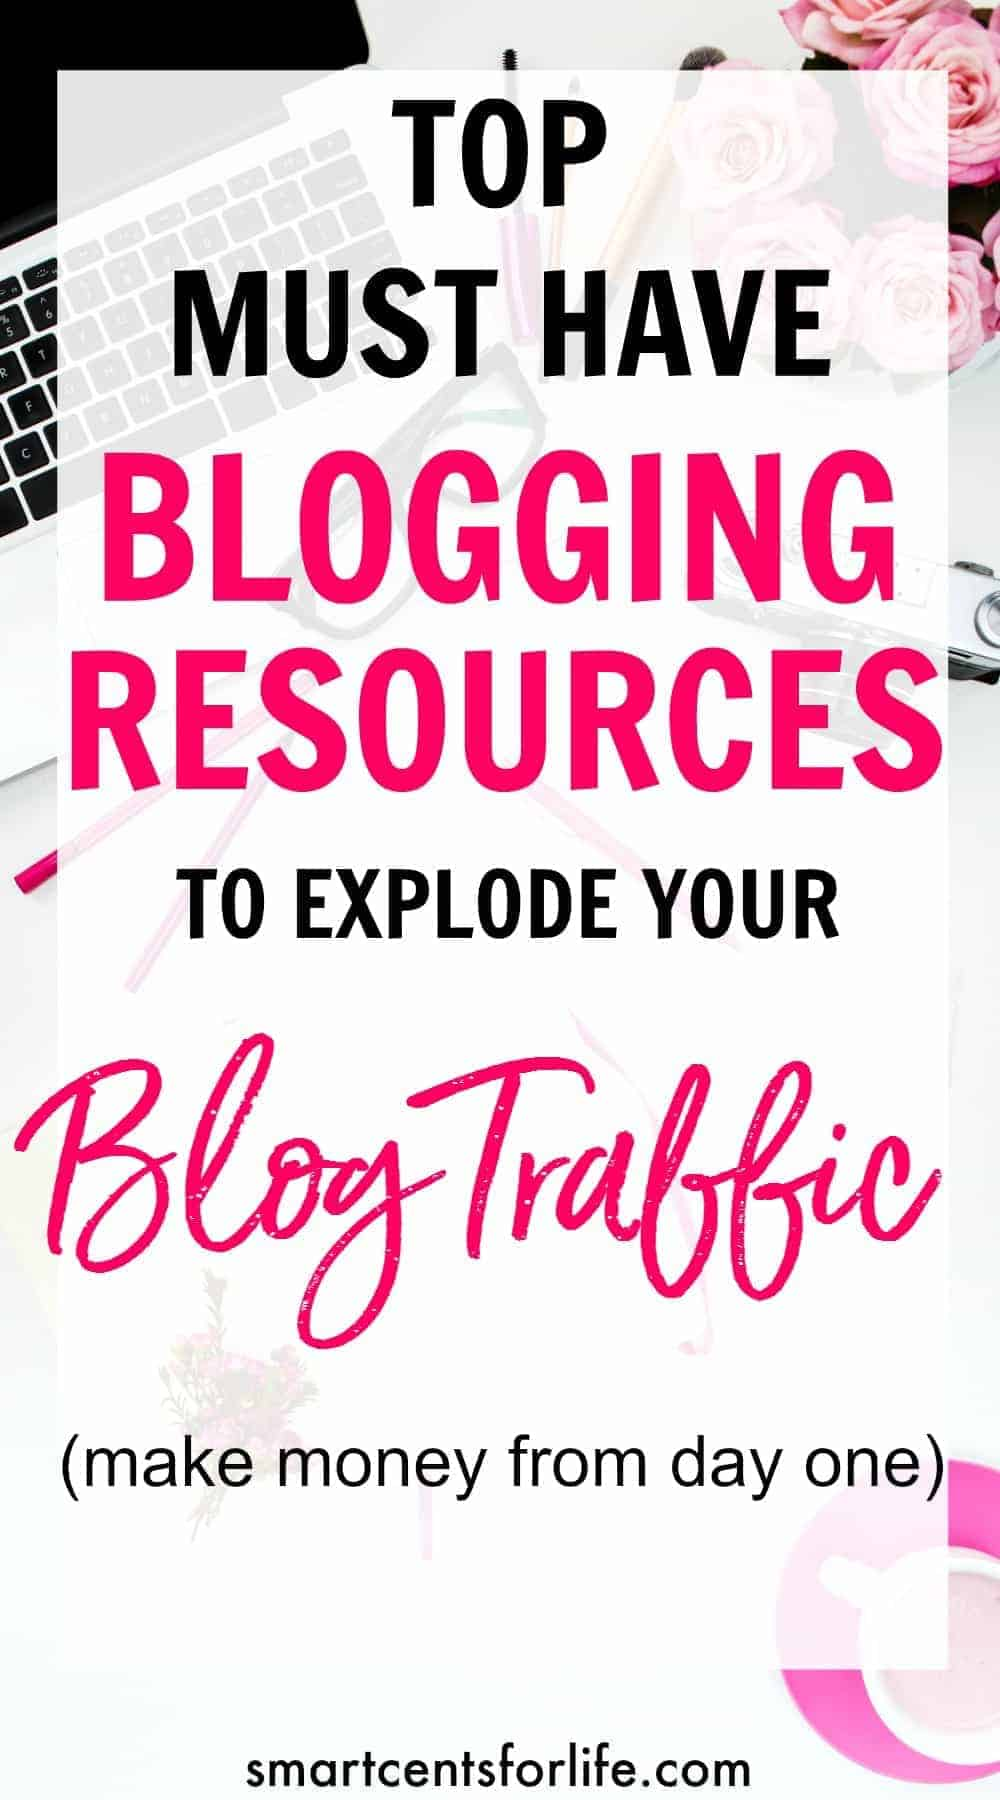 These top must have blogging resources will help you to explode your blog! Learn what blogging tools will help you to make money with your blog from day one.